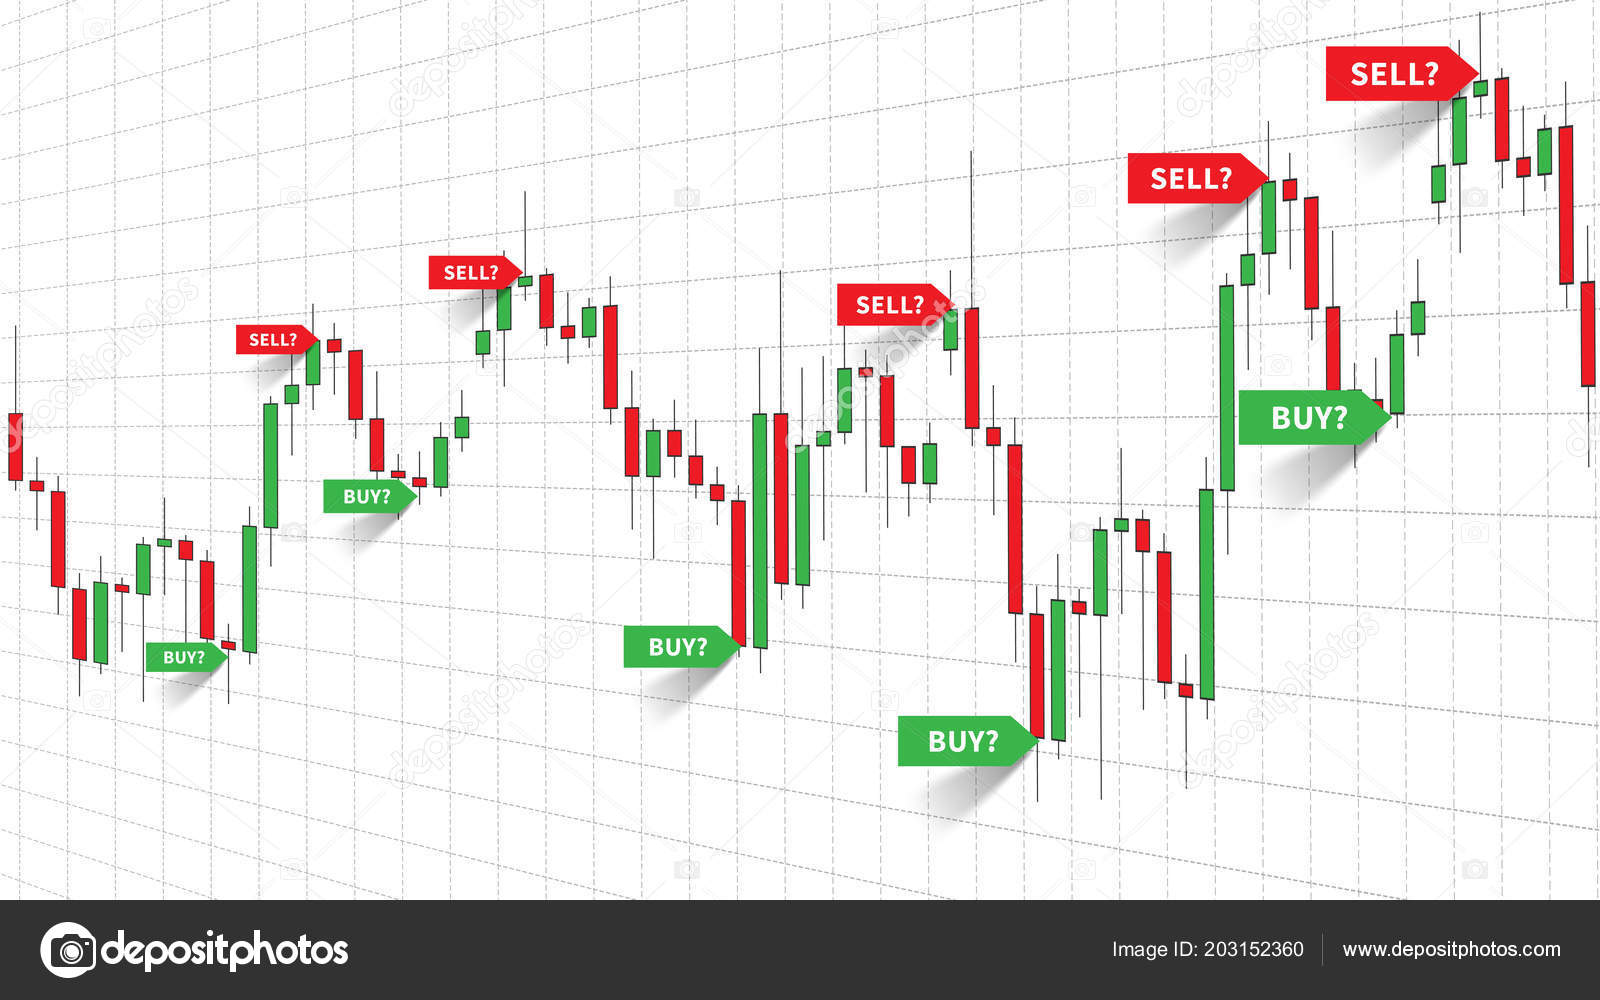 Forex buy and sell signals santee investments inc